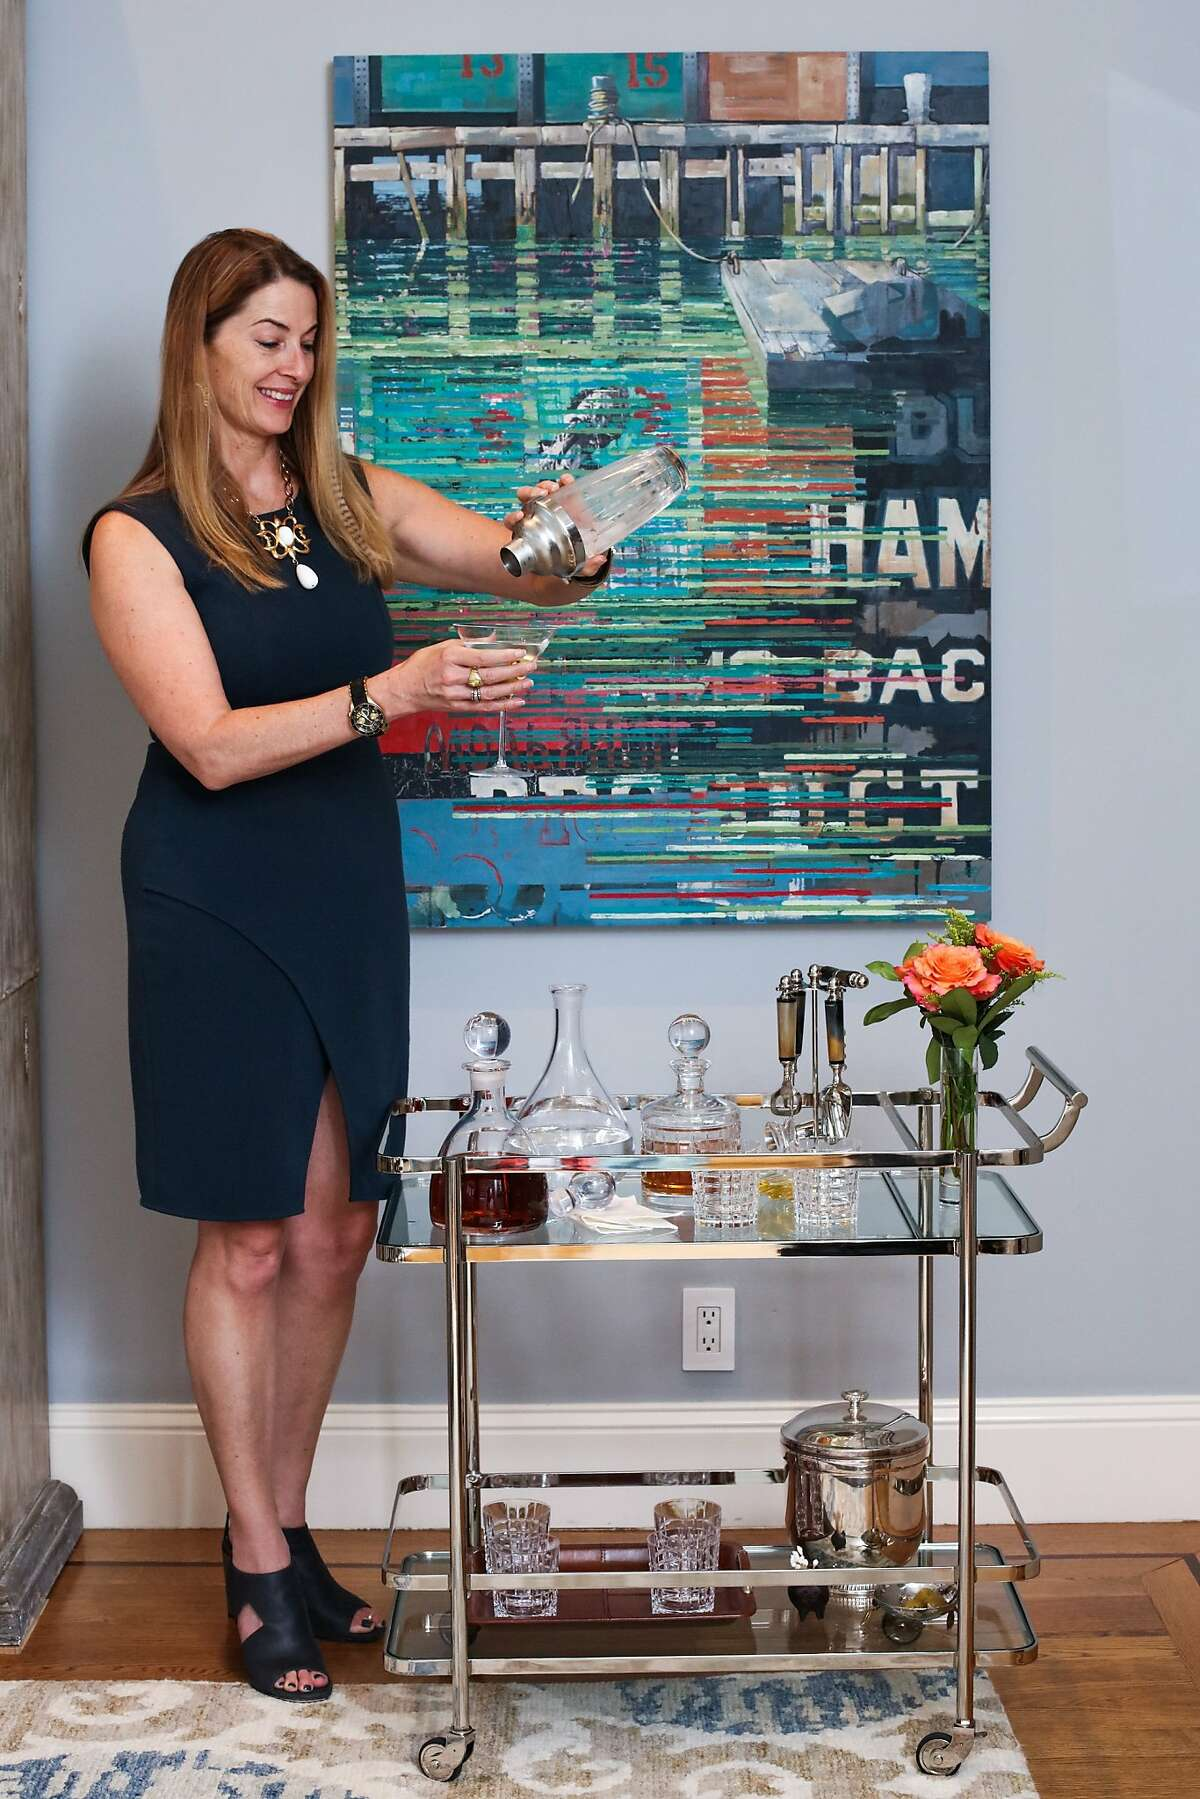 Interior designer Tineke Triggs pours a drink at the bar cart she arranged with a clean, uncluttered look in a client's home.